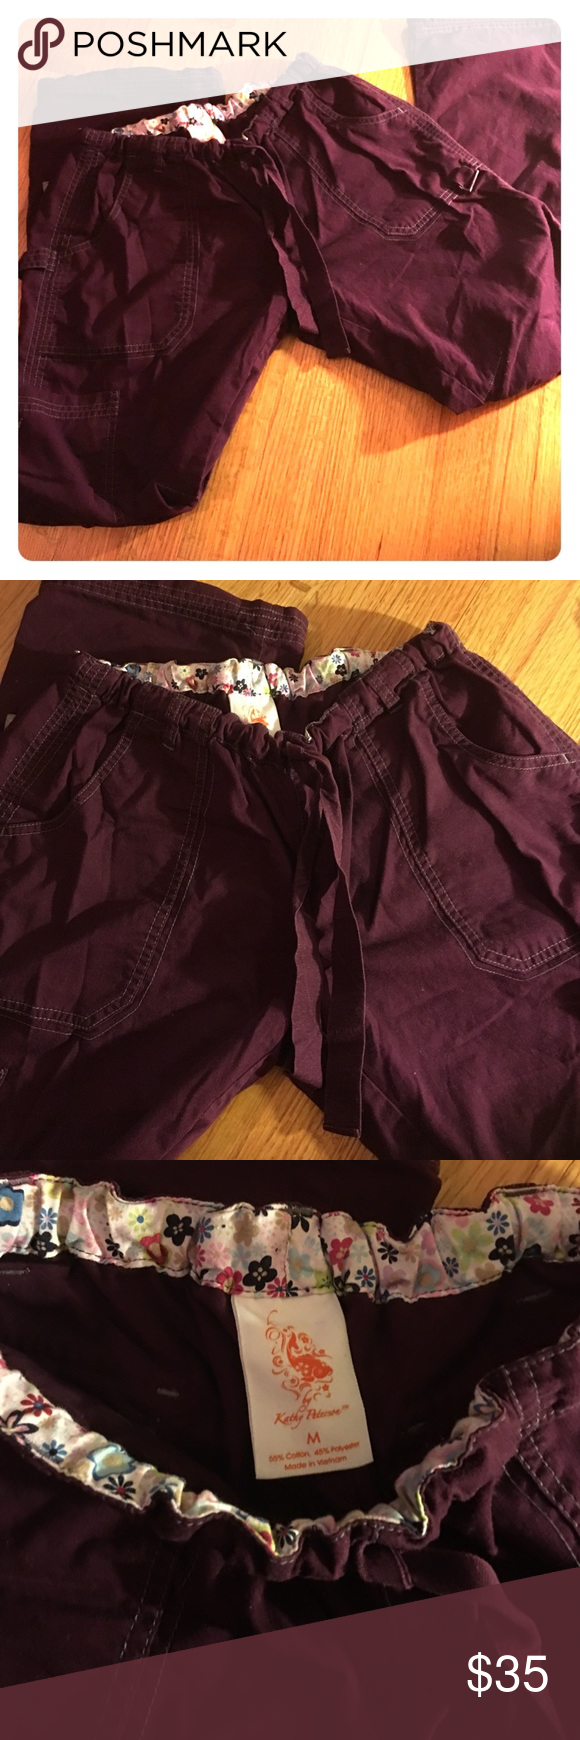 Kathy Peterson nsg scrub pants KOI Maroon/deep purple color scrub pants. These are KOI brand-high quality nsg brand. NWOT. Multiple pockets, drawstring waist and drawstring at end of legs. Very cute and stylish🌟 Koi Pants Straight Leg